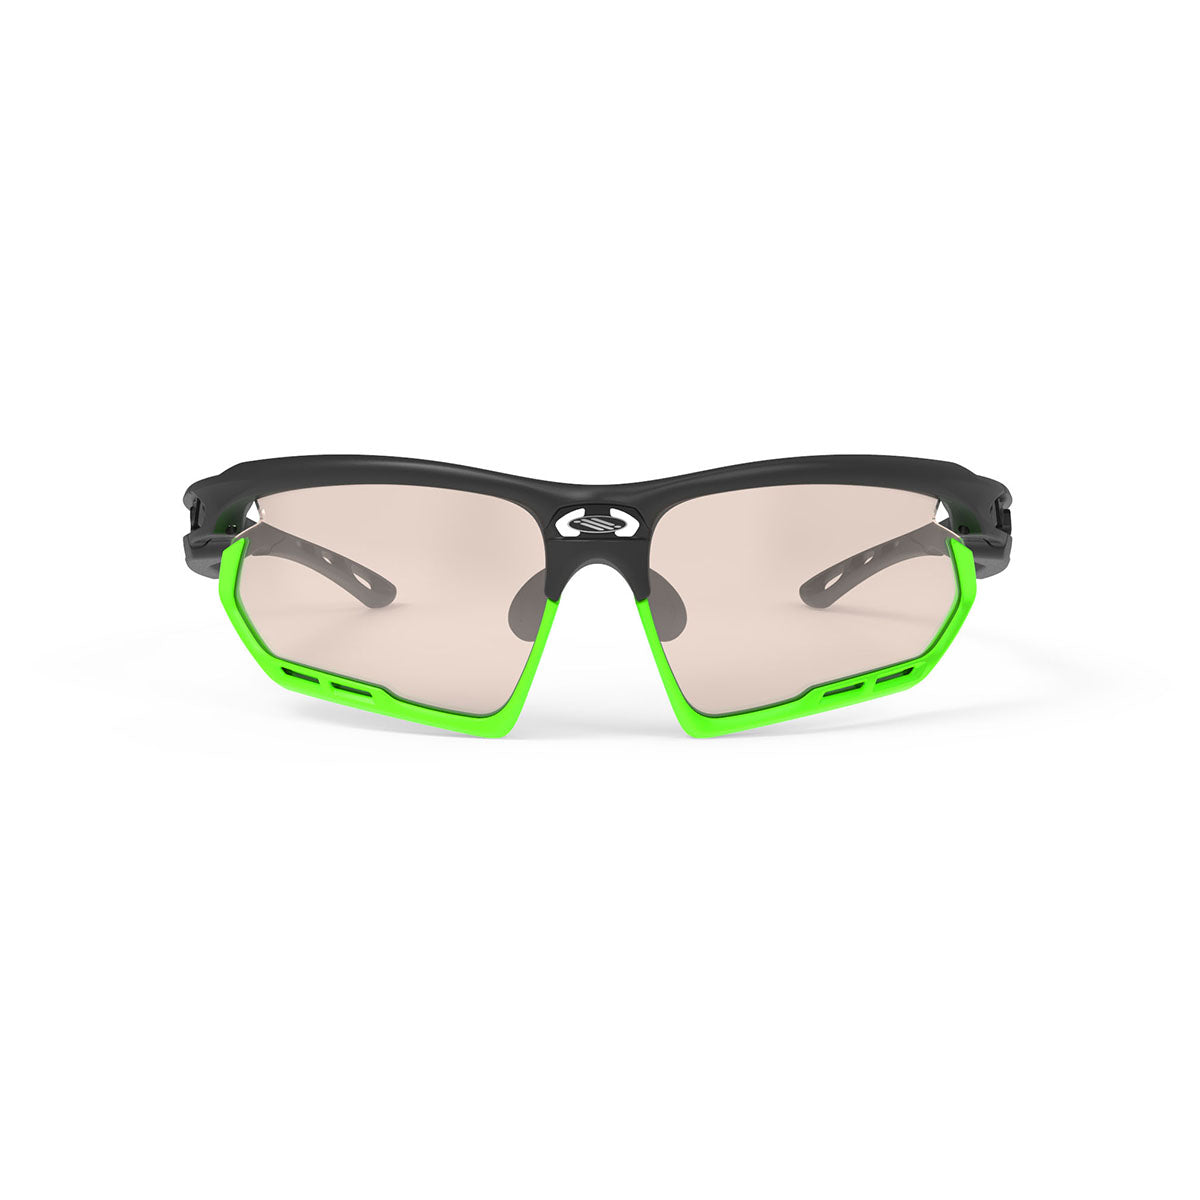 Rudy Project - Fotonyk - frame color: Matte Black - lens color: ImpactX-2 Photochromic Clear to Laser Brown - Bumper Color: Lime - photo angle: Front View Variant Hover Image